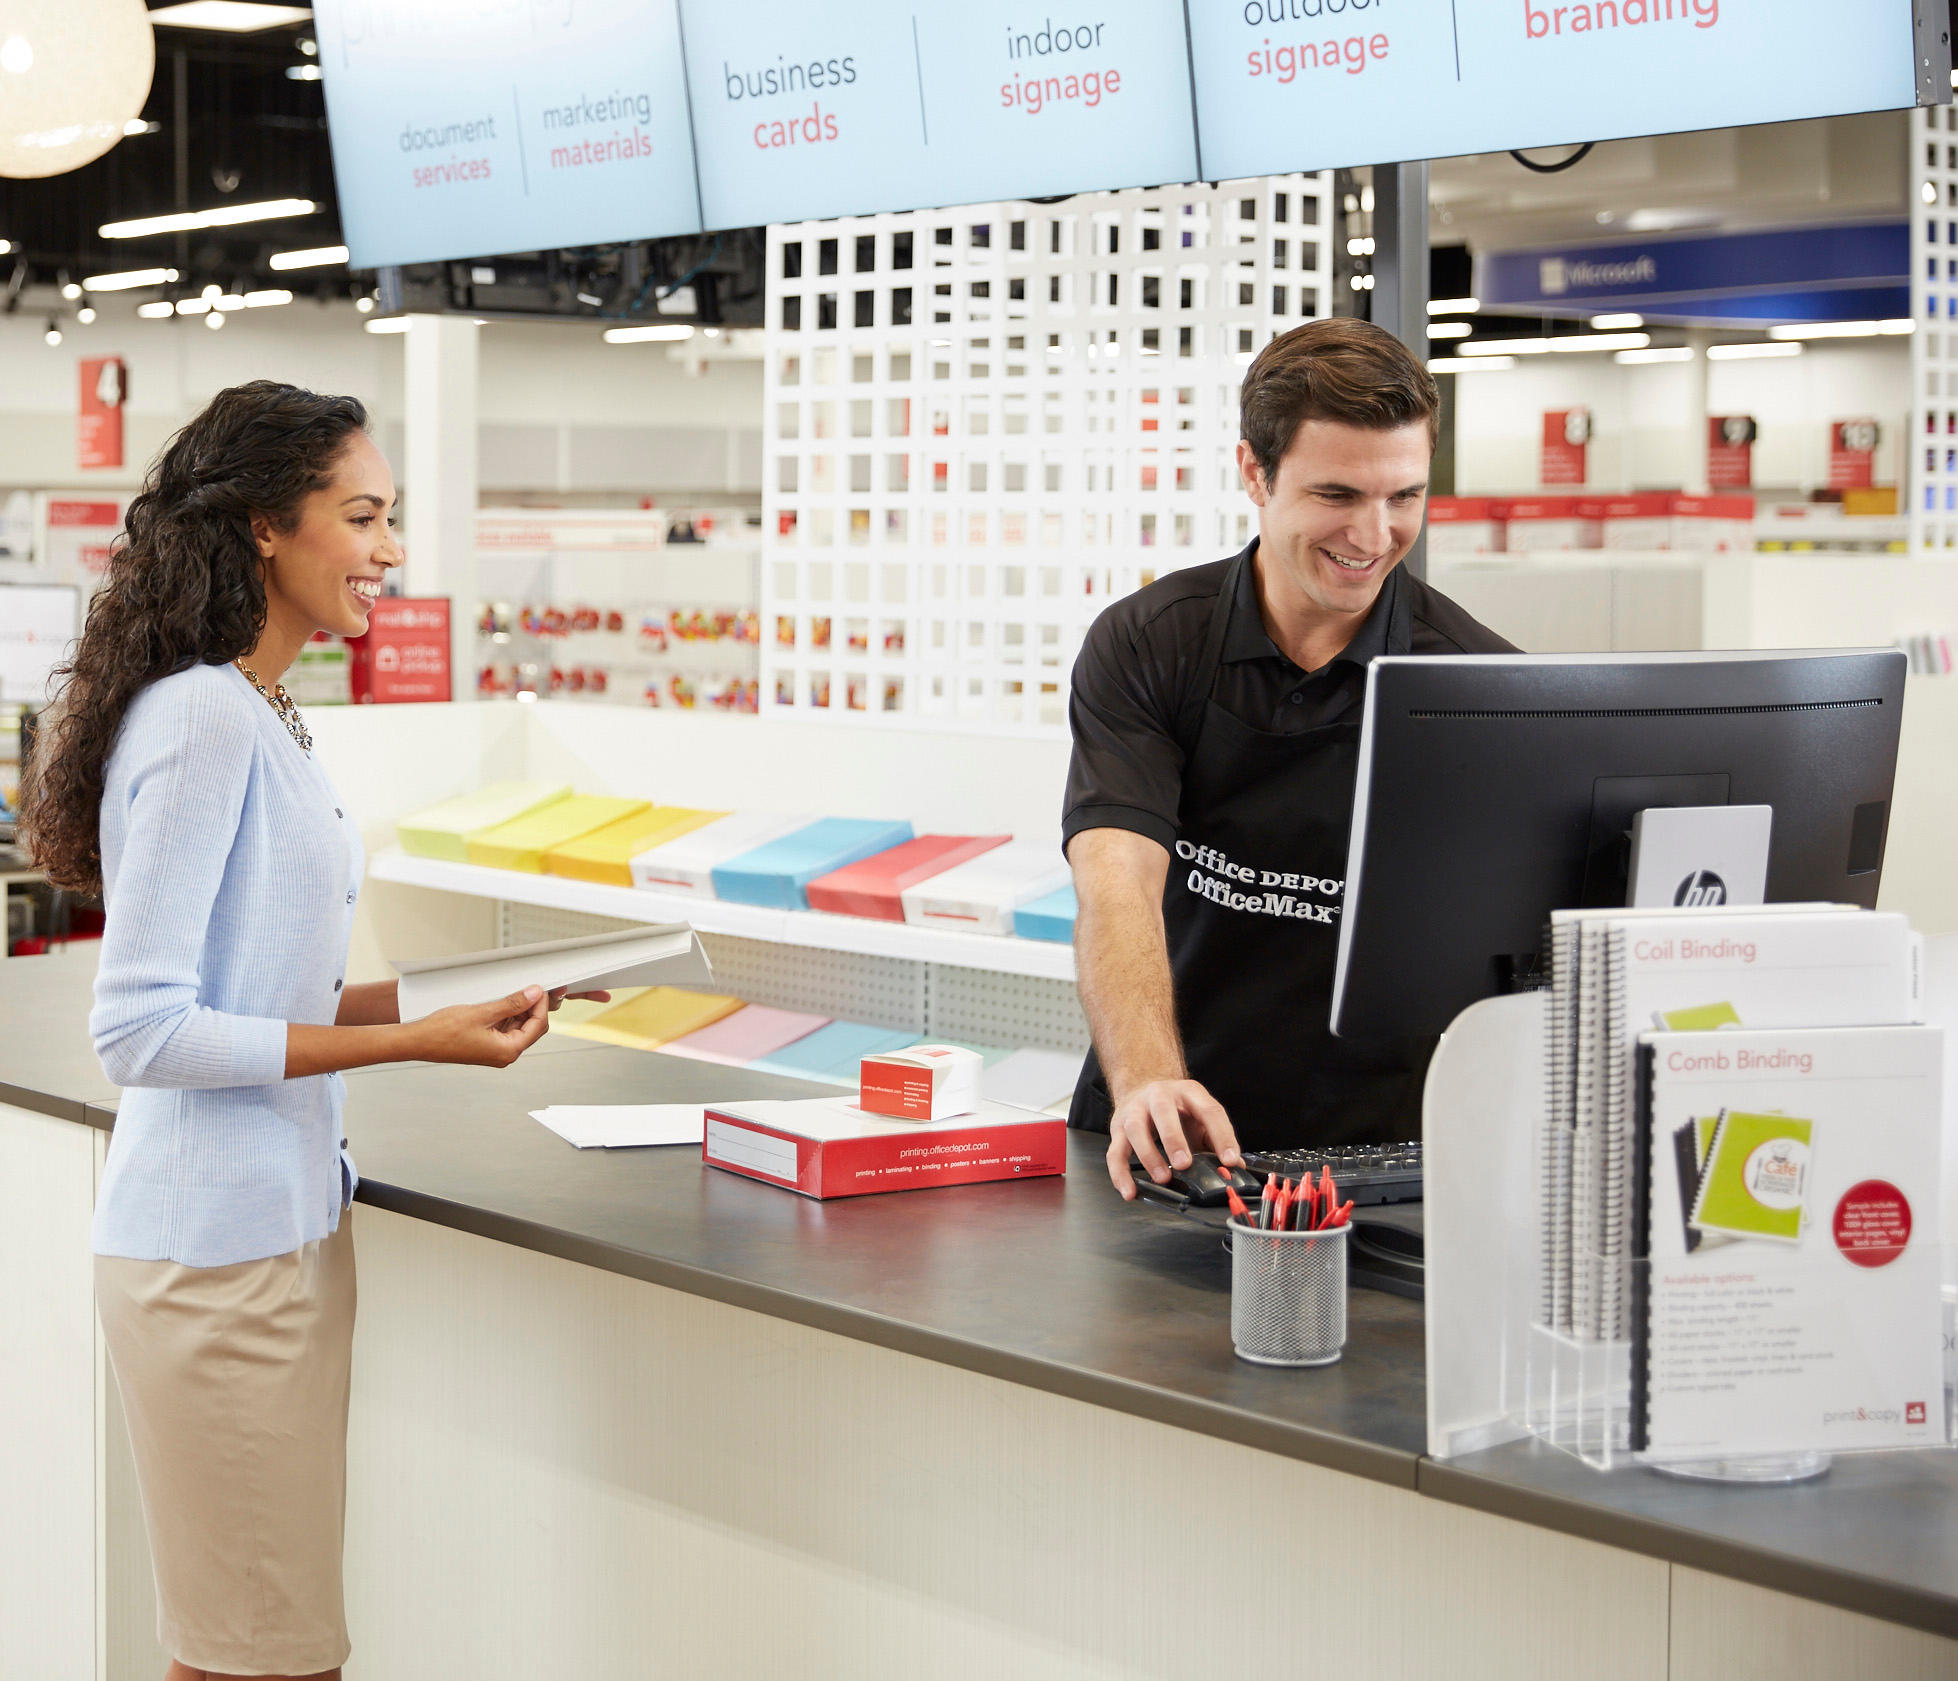 OfficeMax - Print & Copy Services image 3